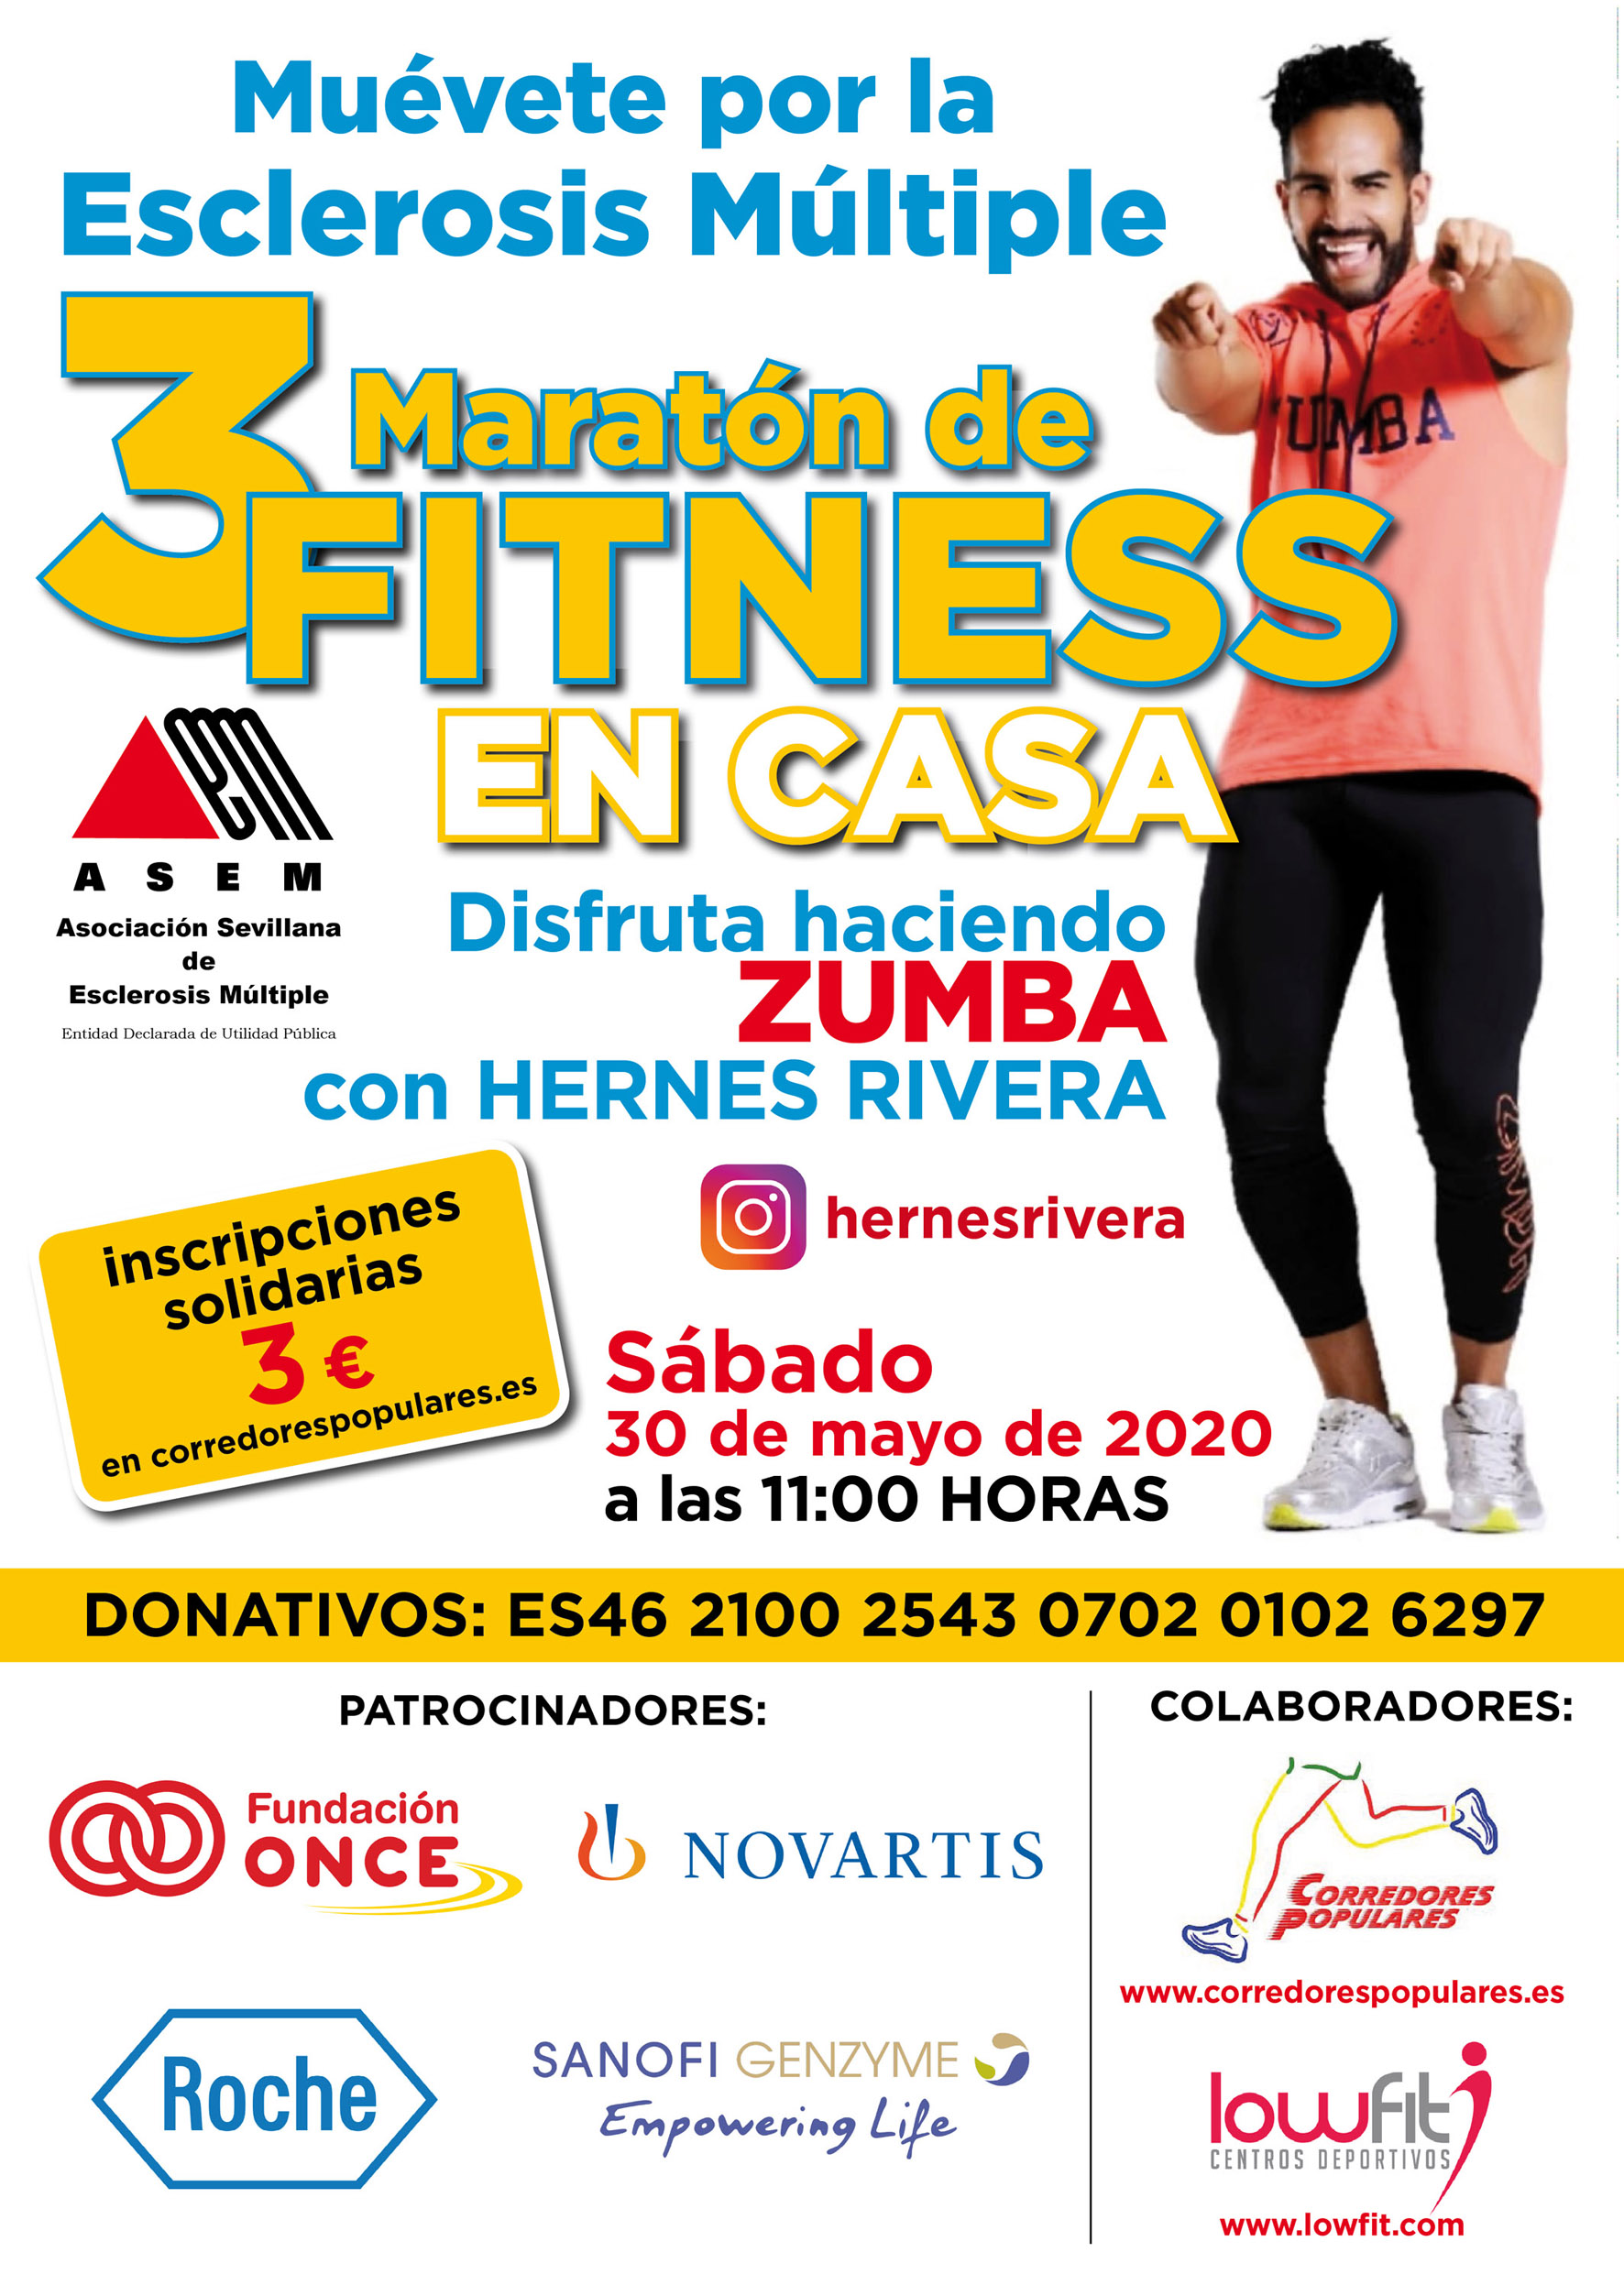 3maratonfintess-hernesrivera.jpg